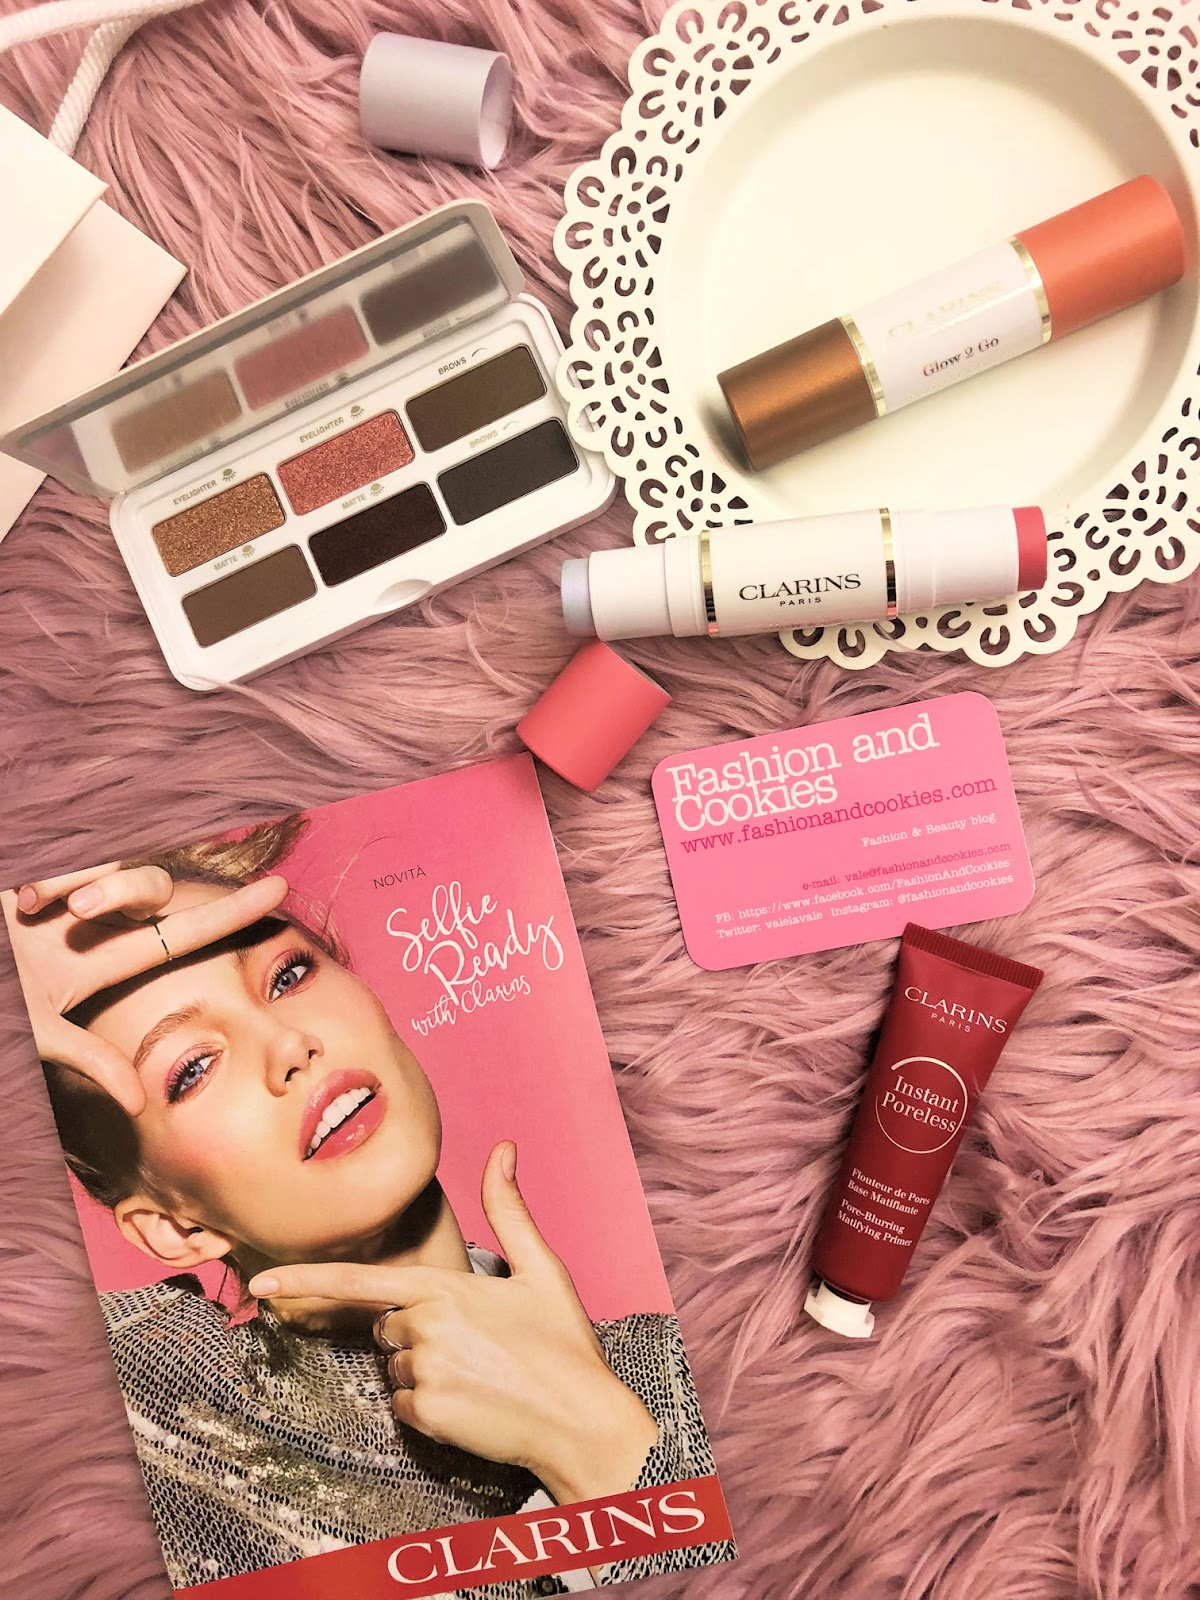 Clarins Selfie Ready collezione makeup primavera 2019 on Fashion and Cookies beauty blog, beauty blogger